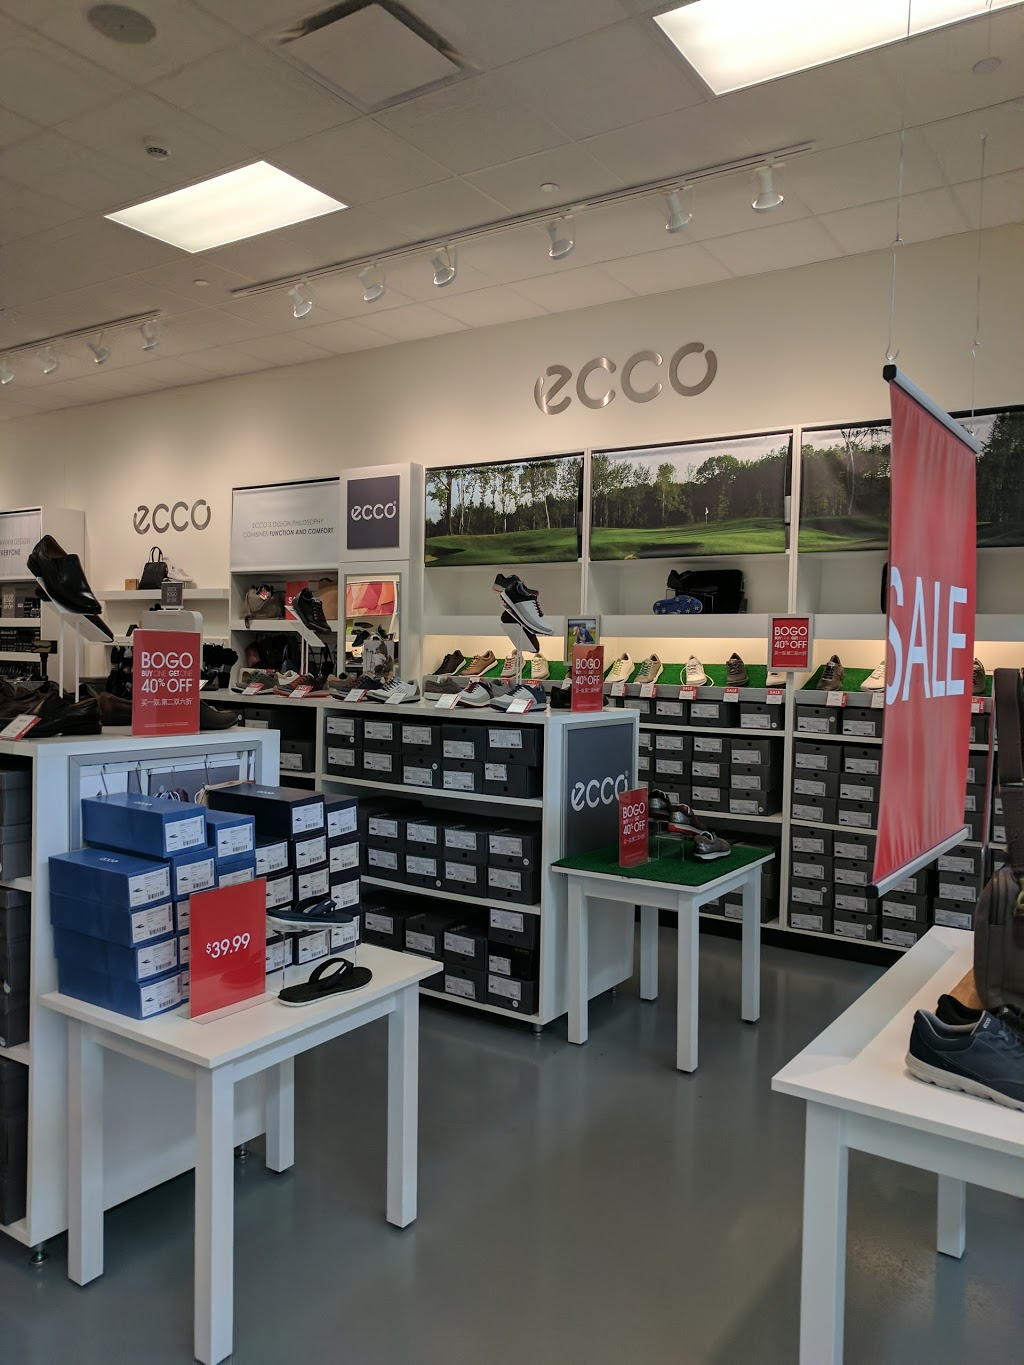 ECCO Outlet - shoe store  | Photo 6 of 7 | Address: 455 Trolley Line Blvd #265, Mashantucket, CT 06338, USA | Phone: (860) 213-5286